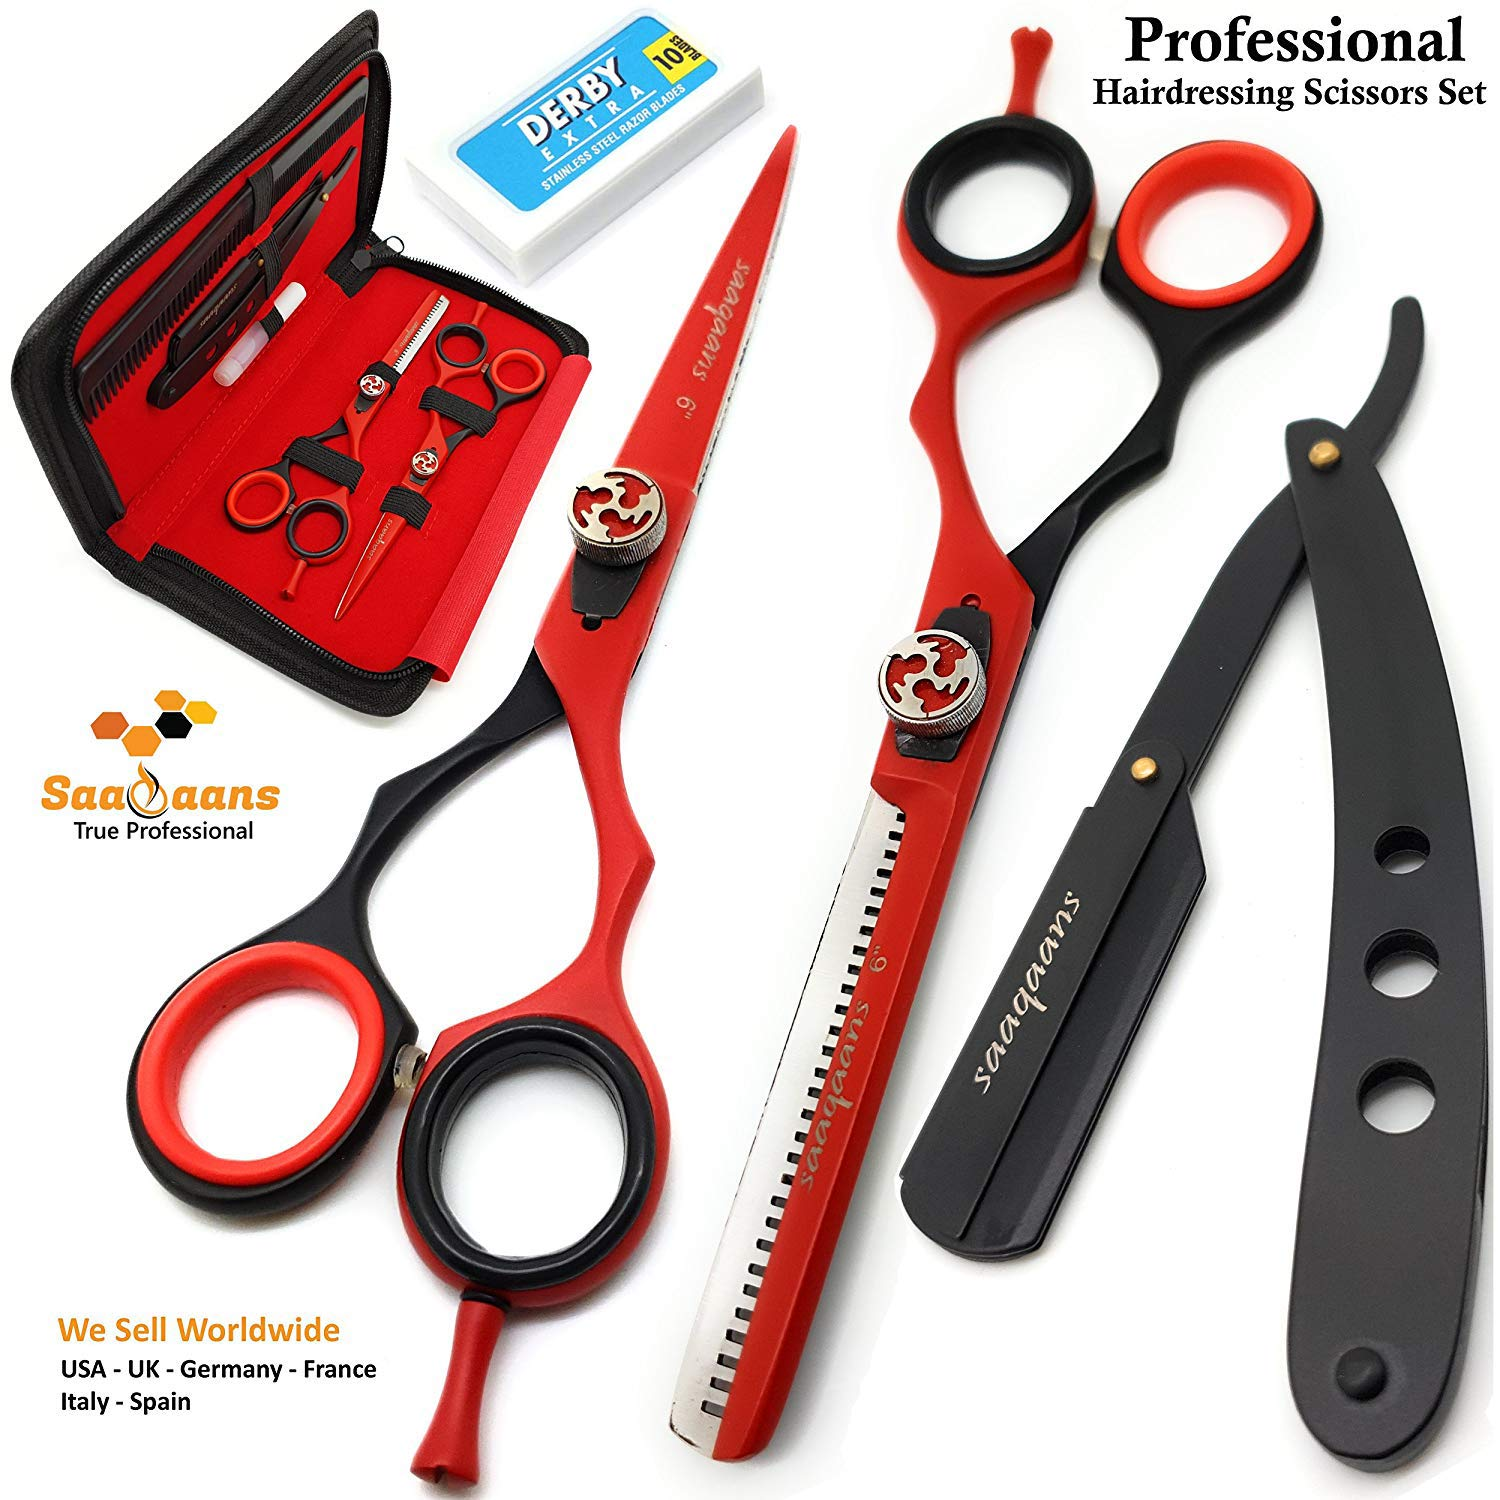 Saaqaans QSS-04 Professional Haircut Scissors Set - Package include Barber Scissor, Thinning Shear, Straight Razor, 10 x Derby Double Edge Blades & Hair Comb in Stylish Scissor Case (Red & Black USA) by Saaqaans